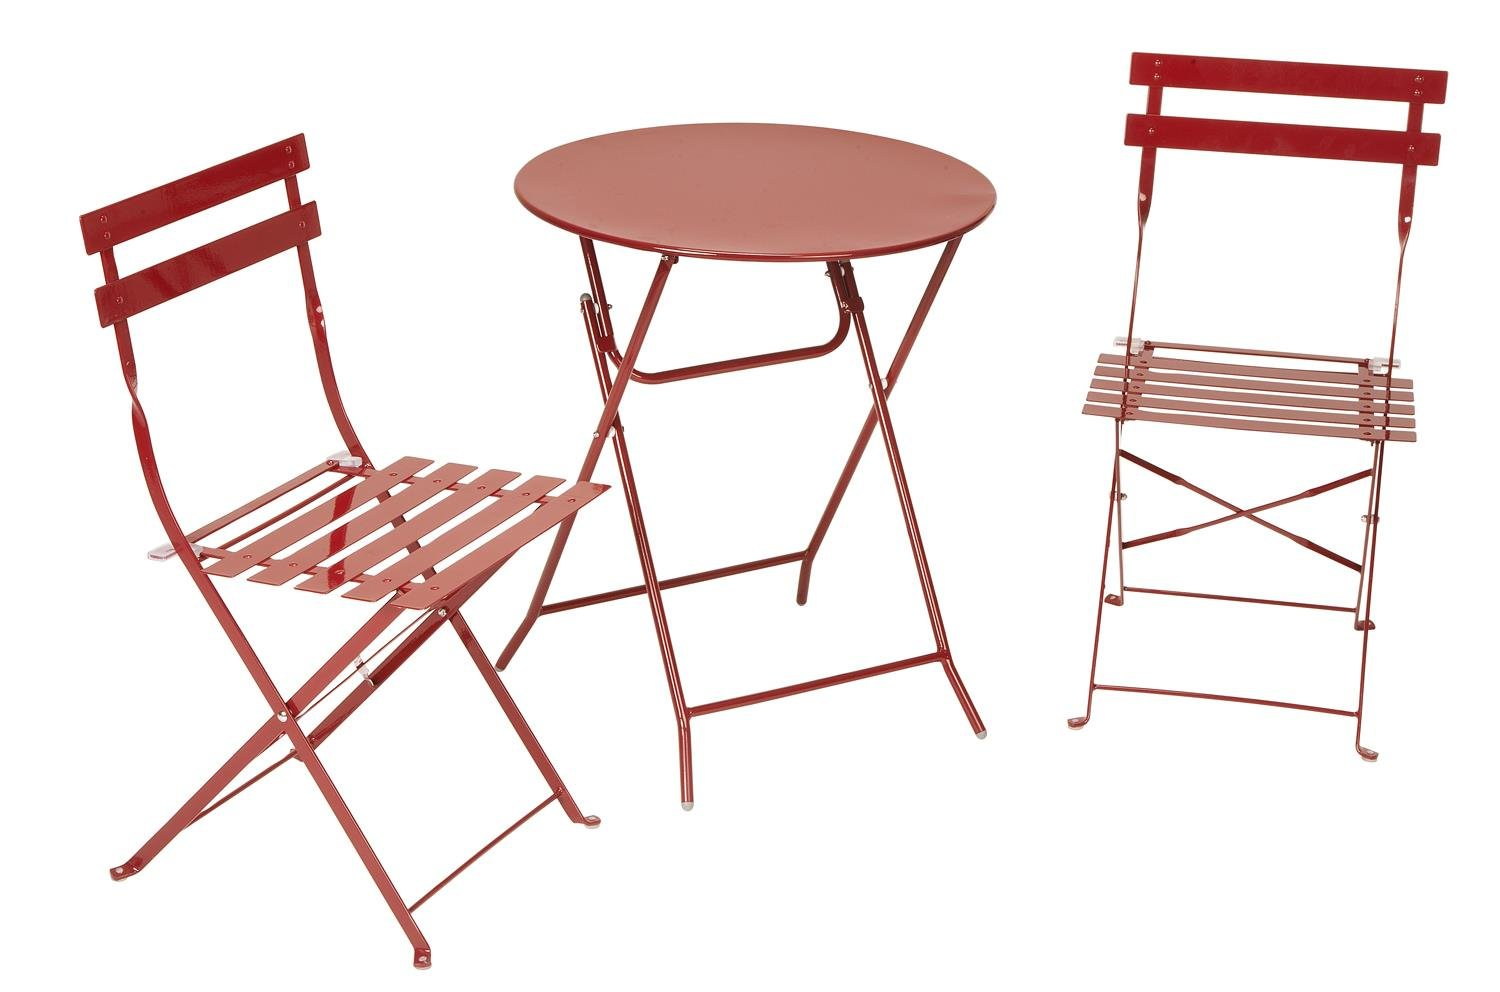 Amazon Cosco 3 Piece Folding Bistro Style Patio Table and